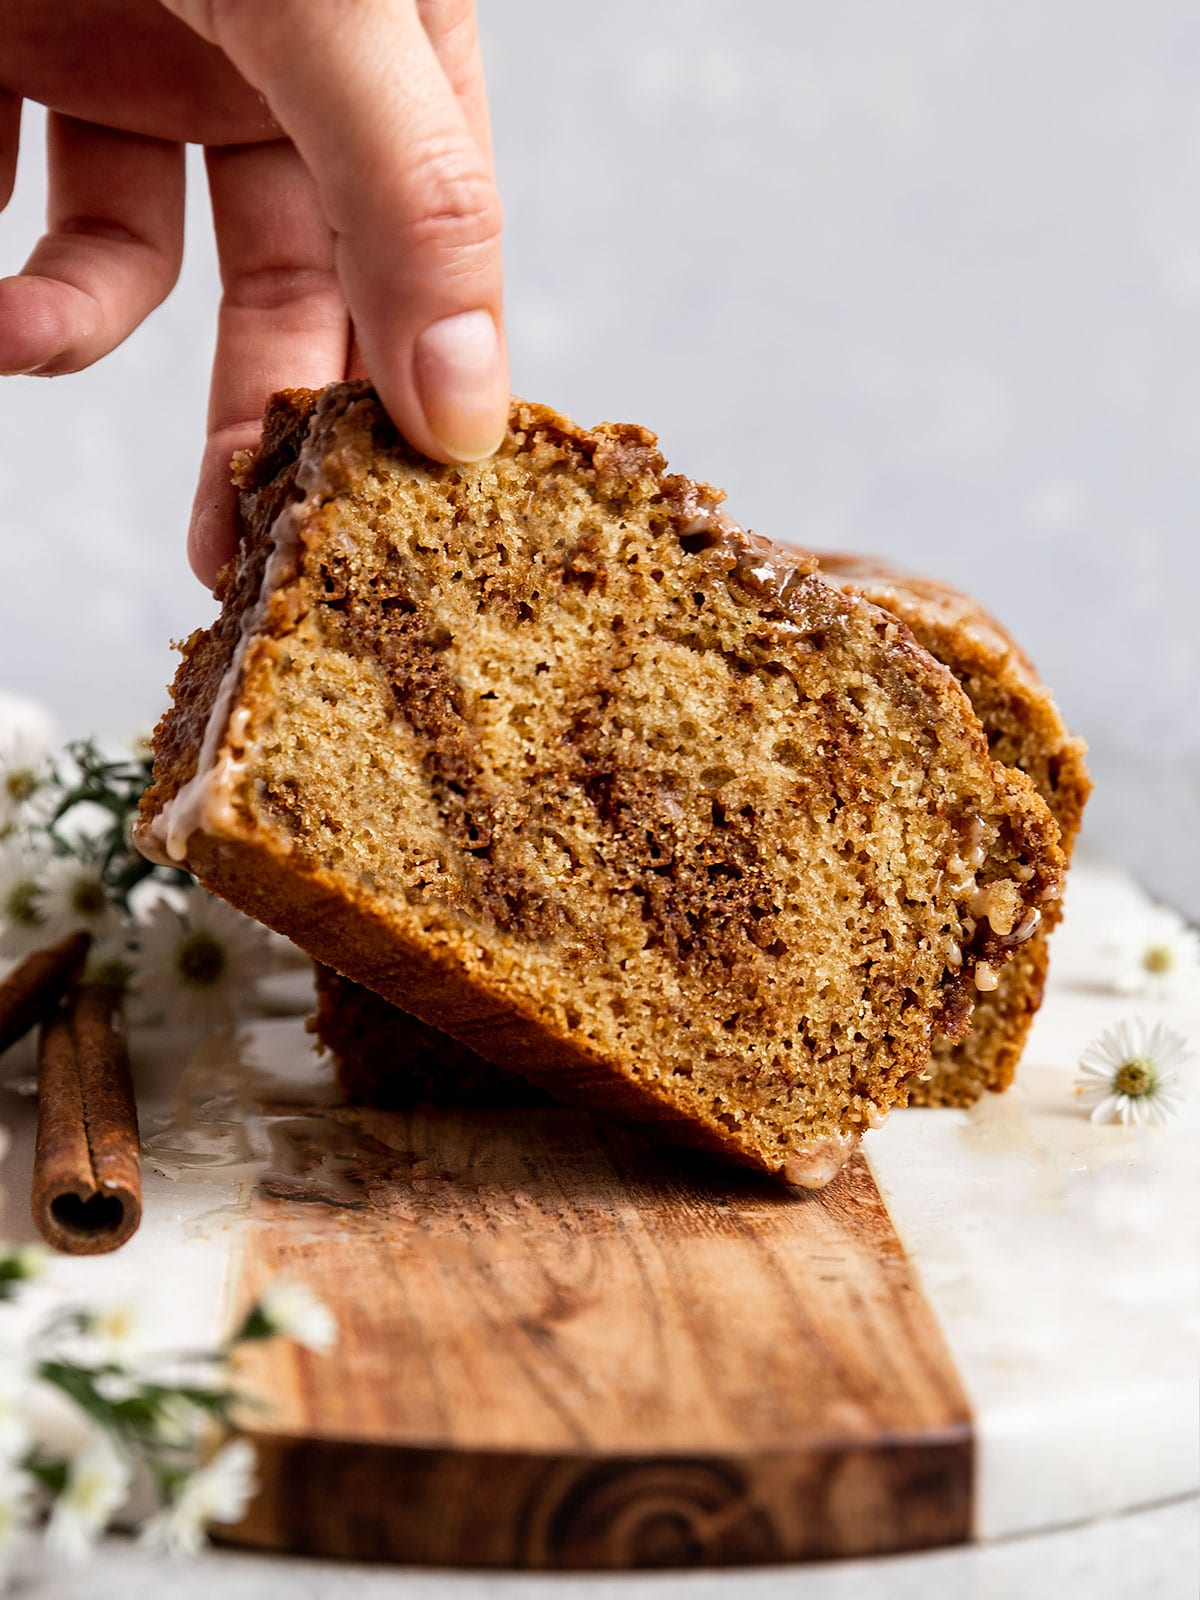 hand lifting up a slice of cinnamon swirl bread from a loaf